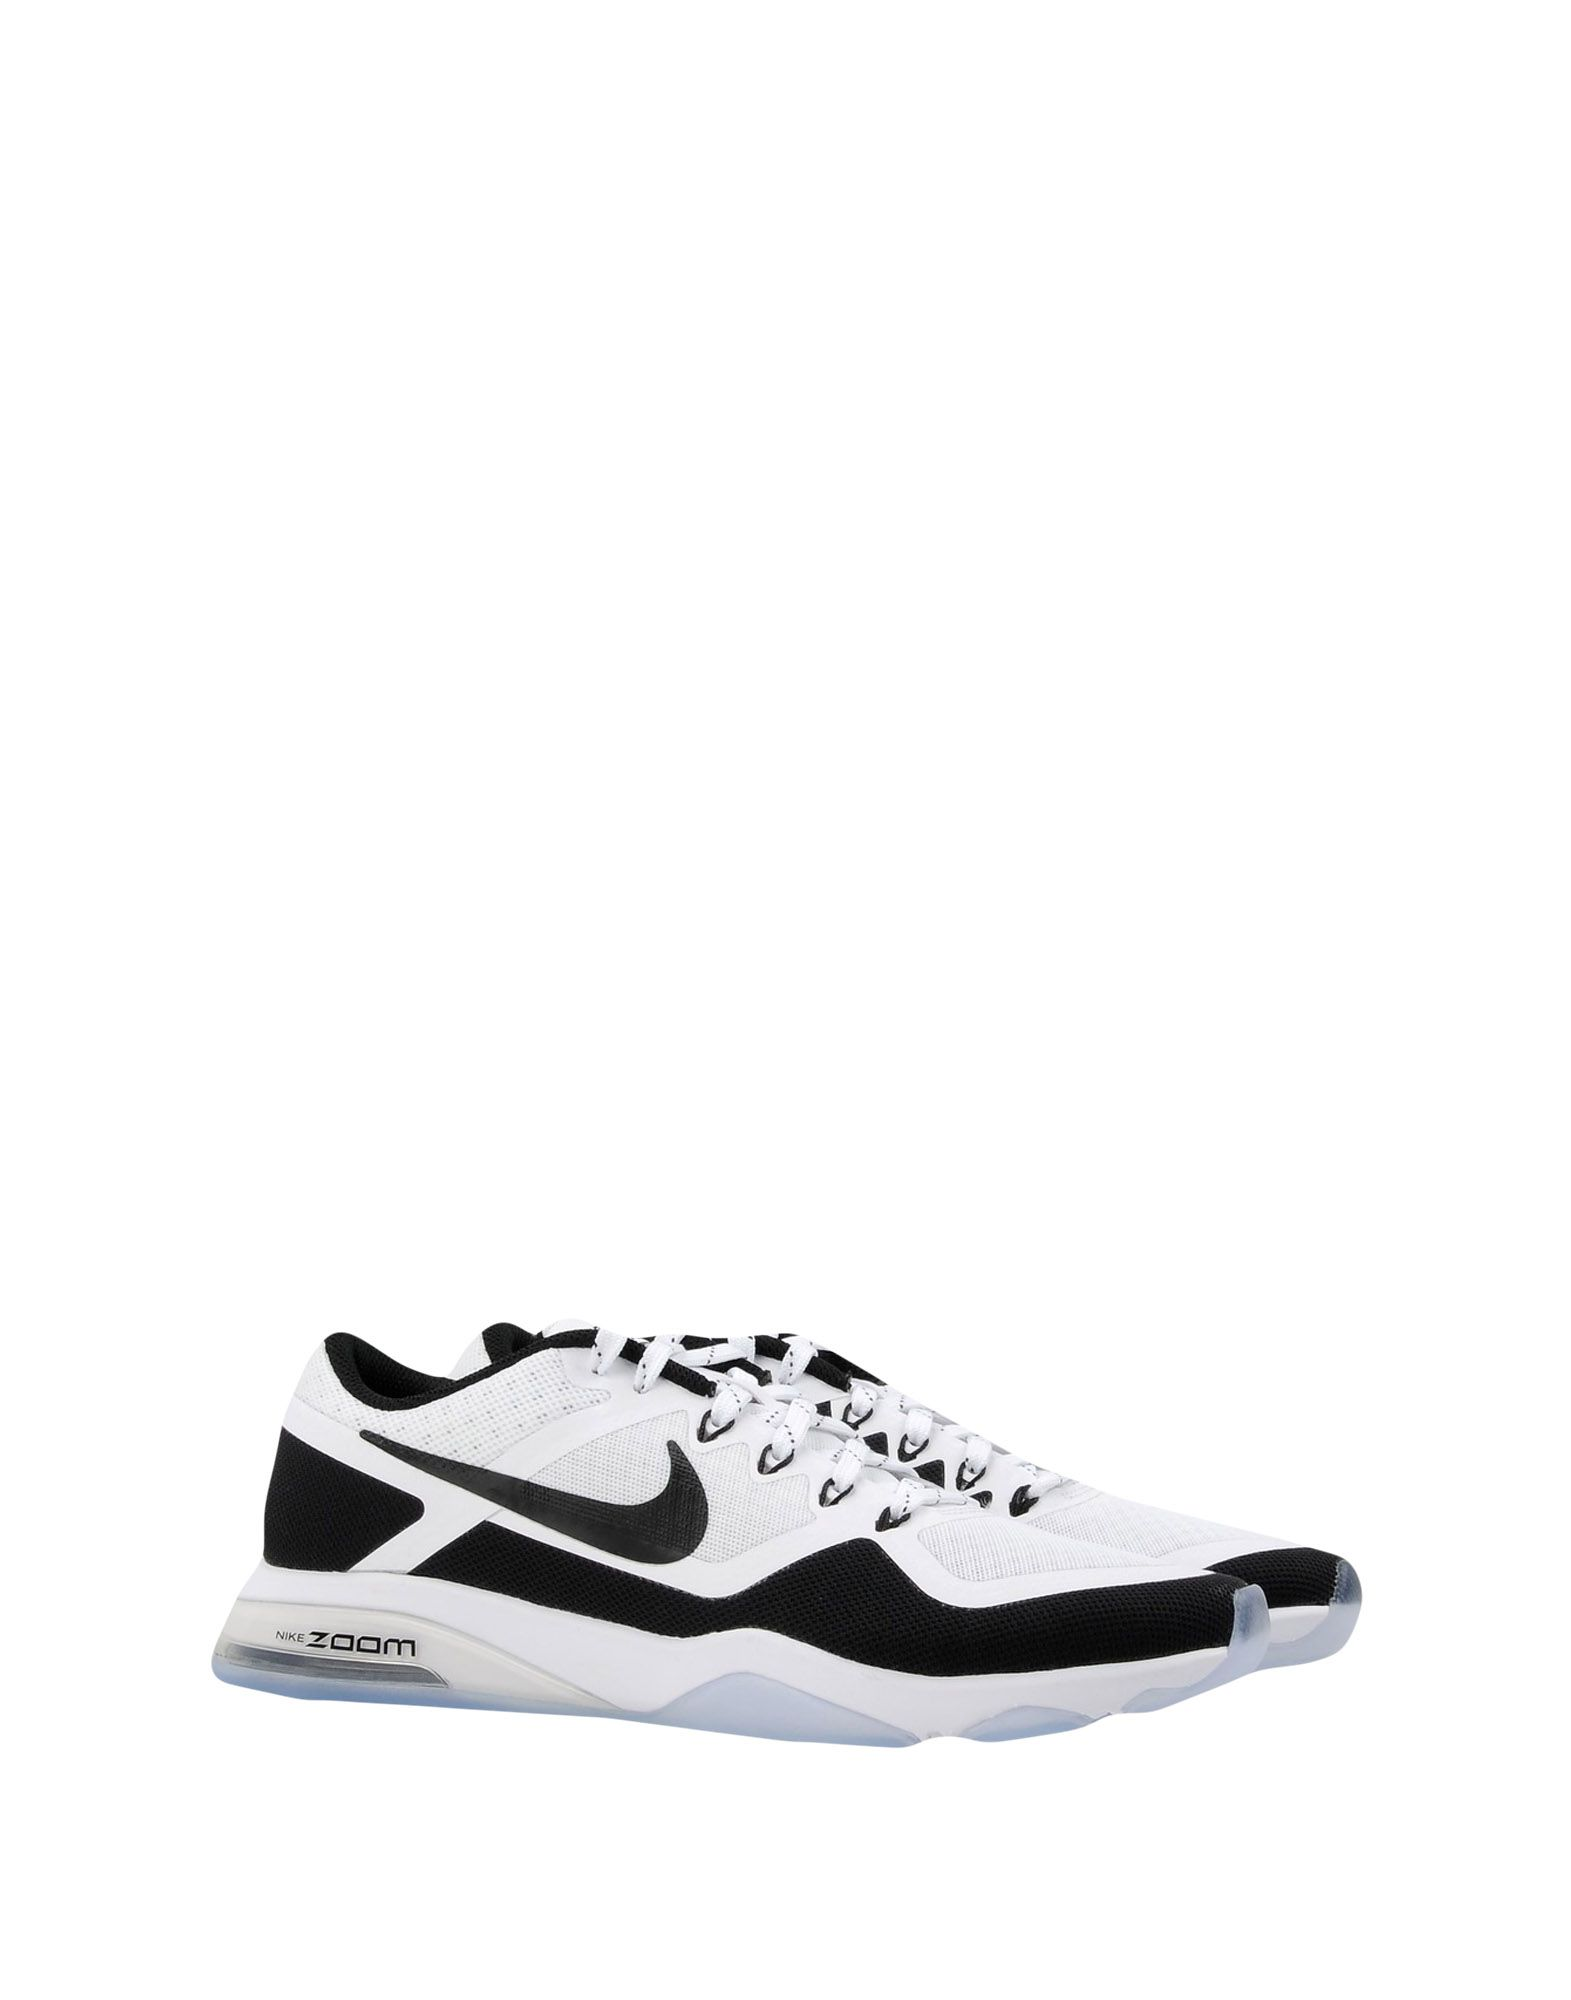 Sneakers Nike   Air Zoom Fitness - Donna - 11307884OR